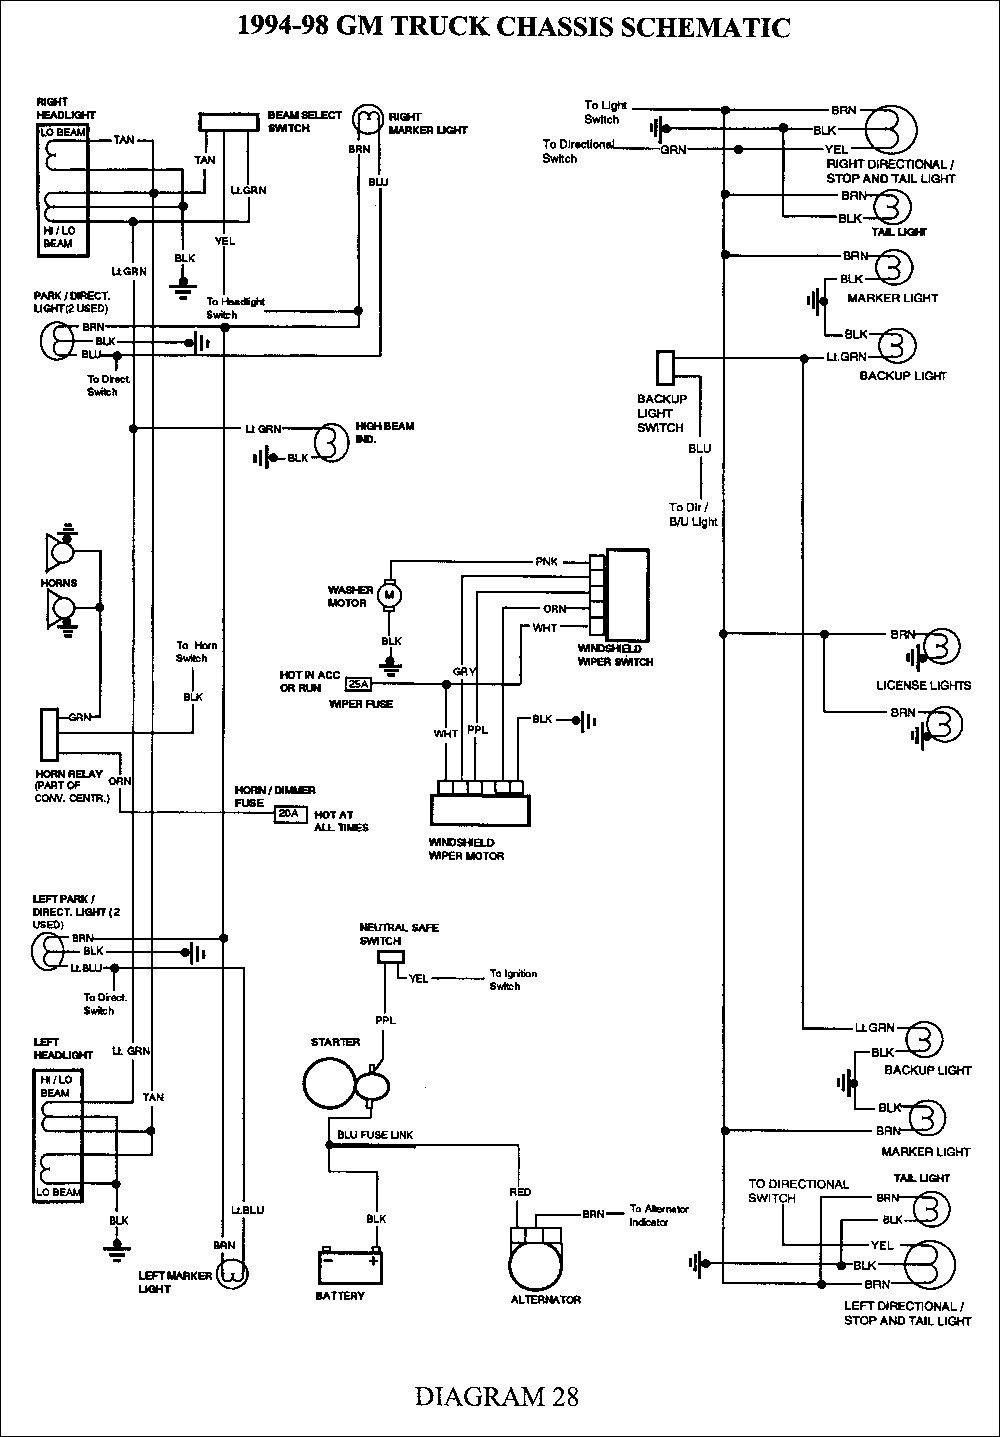 hight resolution of chevy 1500 wiring diagram free picture schematic trusted wiring 91 chevy pickup wiring diagram get free image about wiring diagram